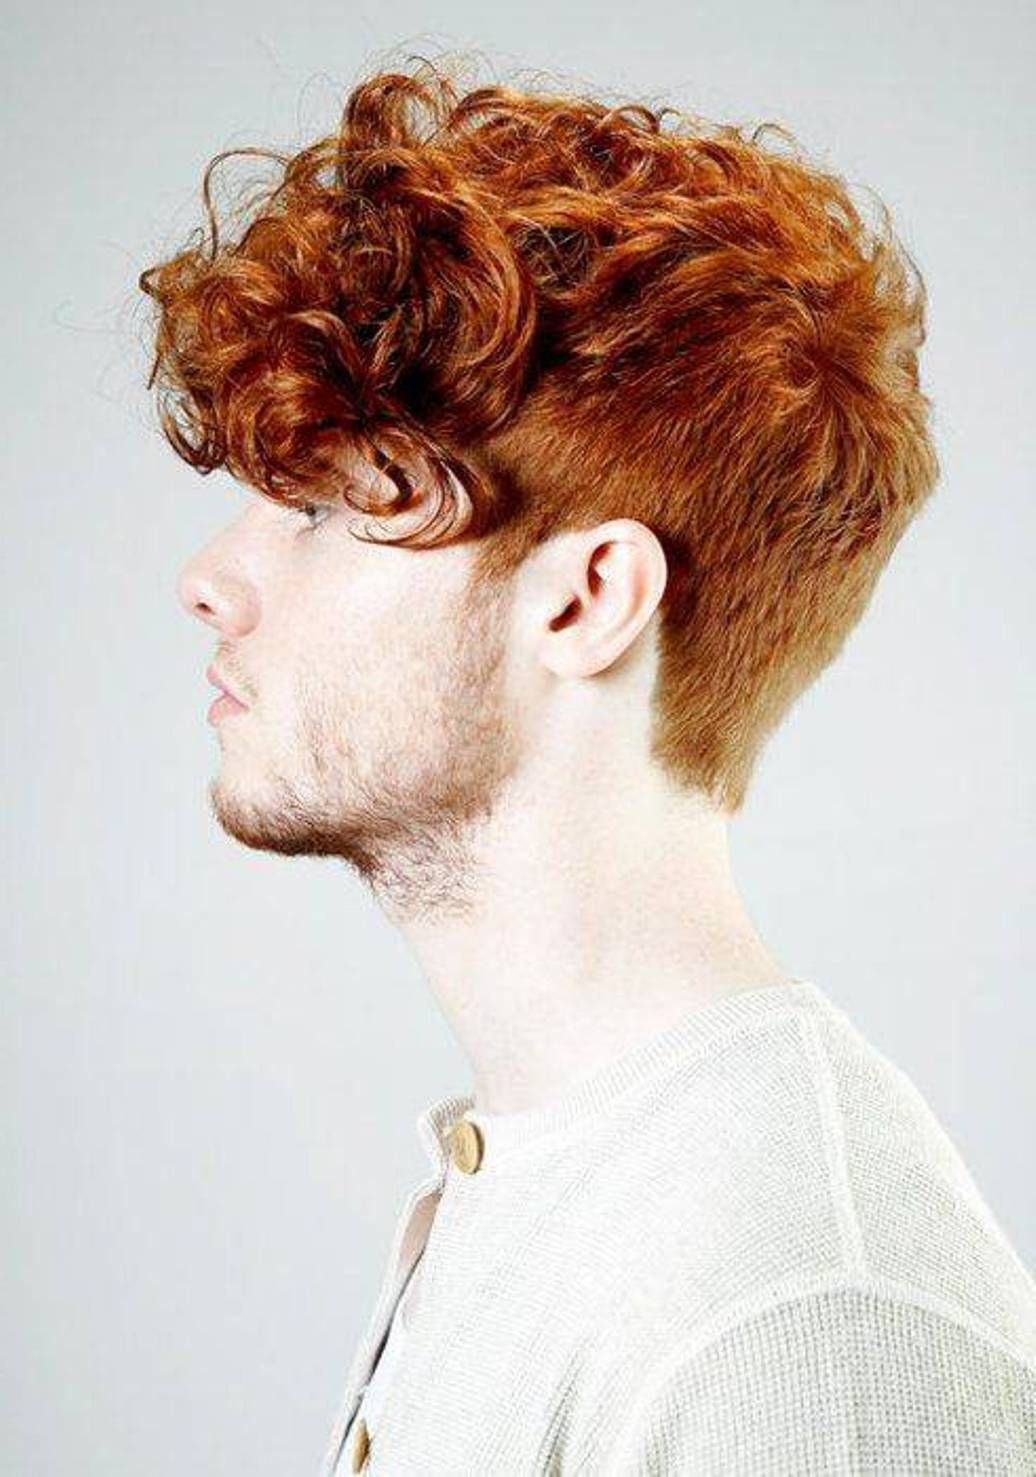 Red Short Curly Hair Styles For Men Lockige Frisuren Frisuren